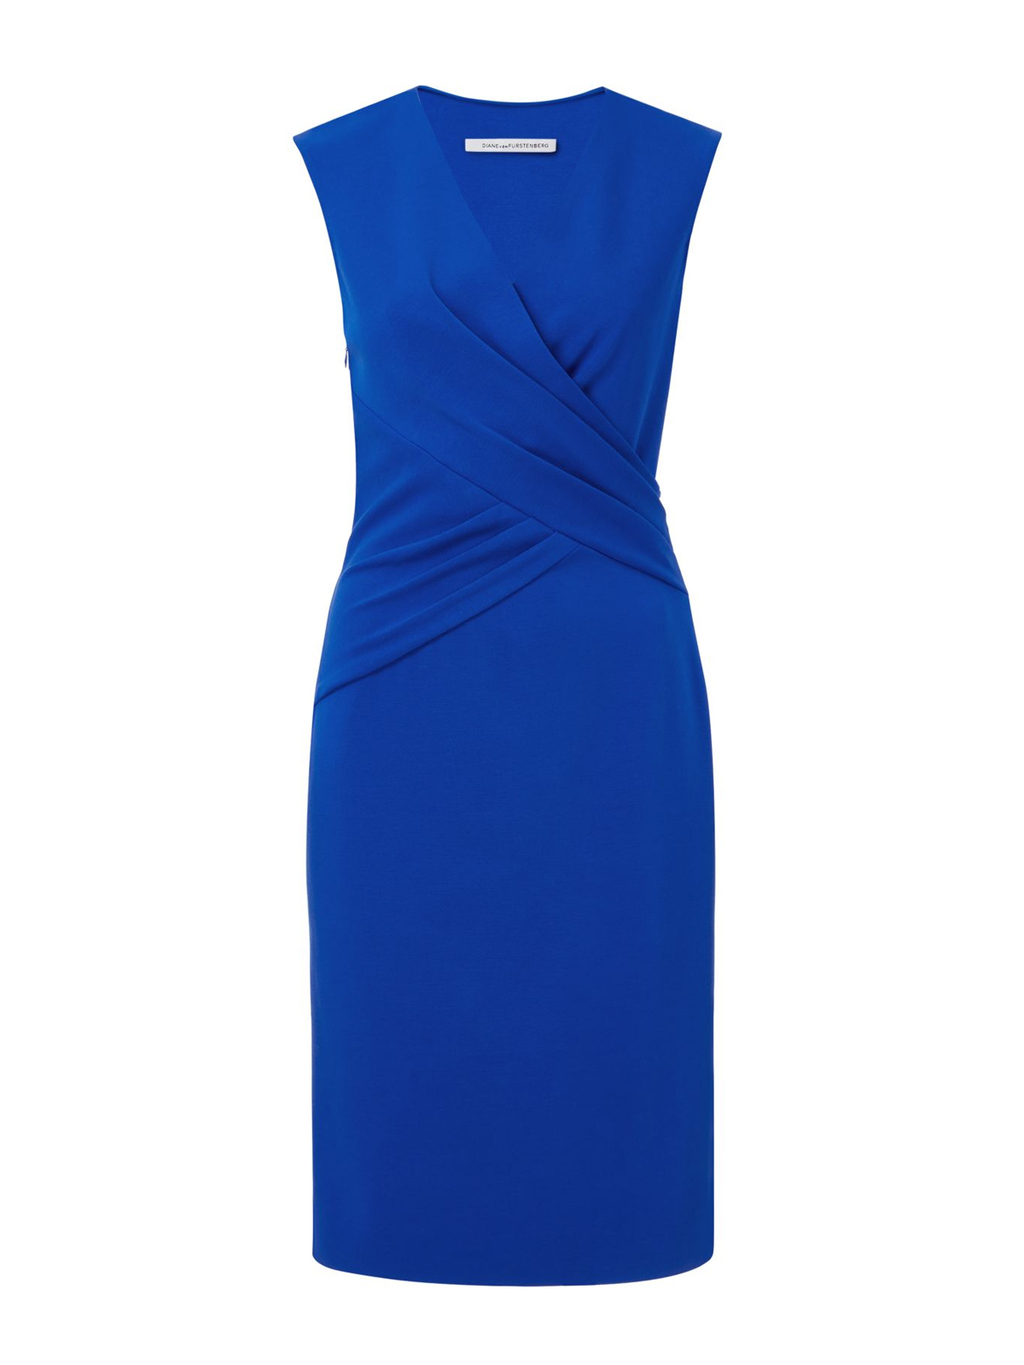 Leora Dress - style: faux wrap/wrap; neckline: v-neck; pattern: plain; sleeve style: sleeveless; predominant colour: royal blue; occasions: evening; length: on the knee; fit: body skimming; fibres: viscose/rayon - stretch; sleeve length: sleeveless; pattern type: fabric; texture group: jersey - stretchy/drapey; season: s/s 2016